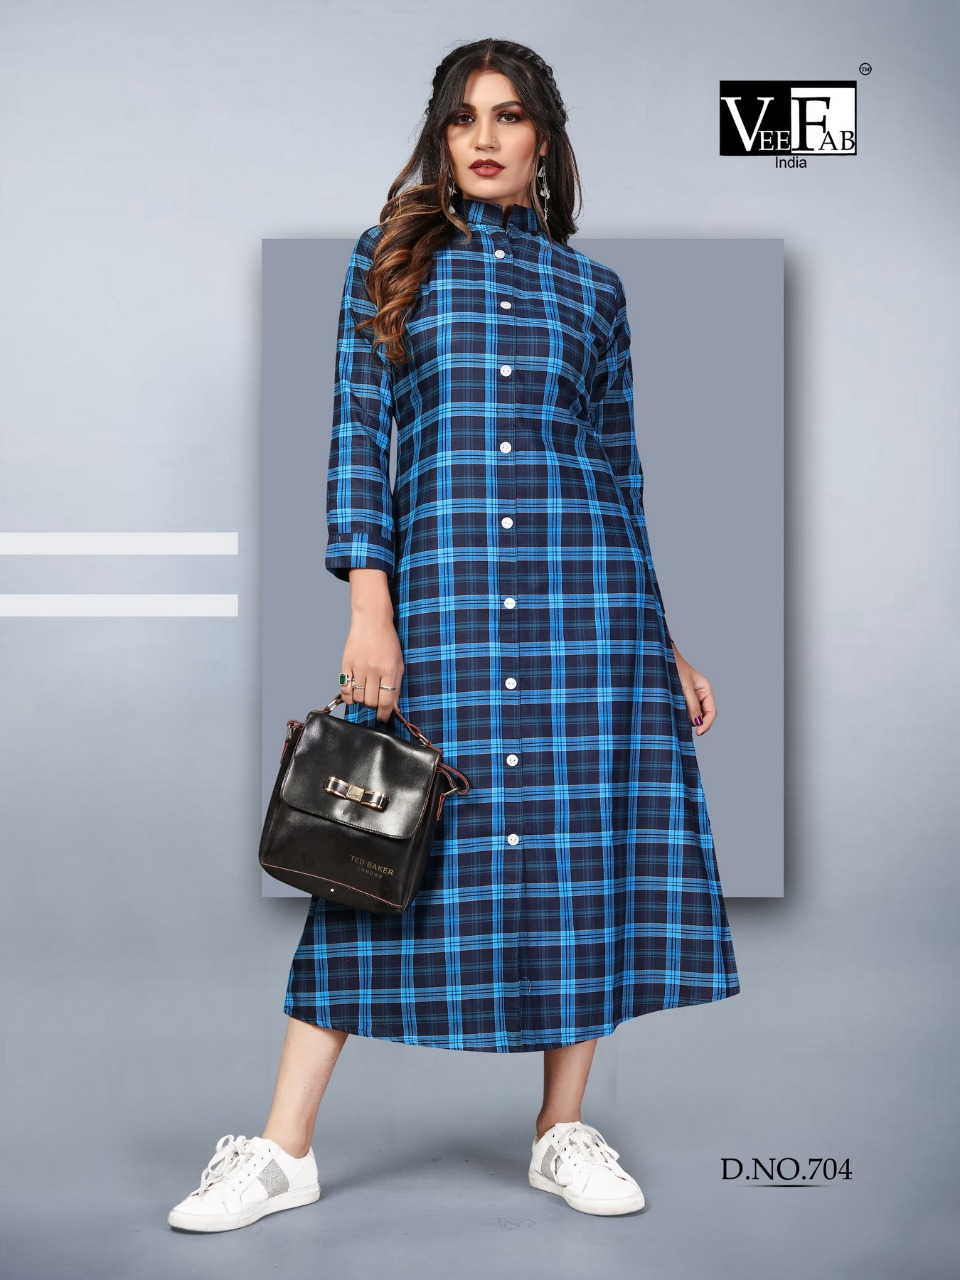 Vee Fab Winter Grace Vol 7 Kurti Wholesale Catalog 6 Pcs 9 - Vee Fab Winter Grace Vol 7 Kurti Wholesale Catalog 6 Pcs